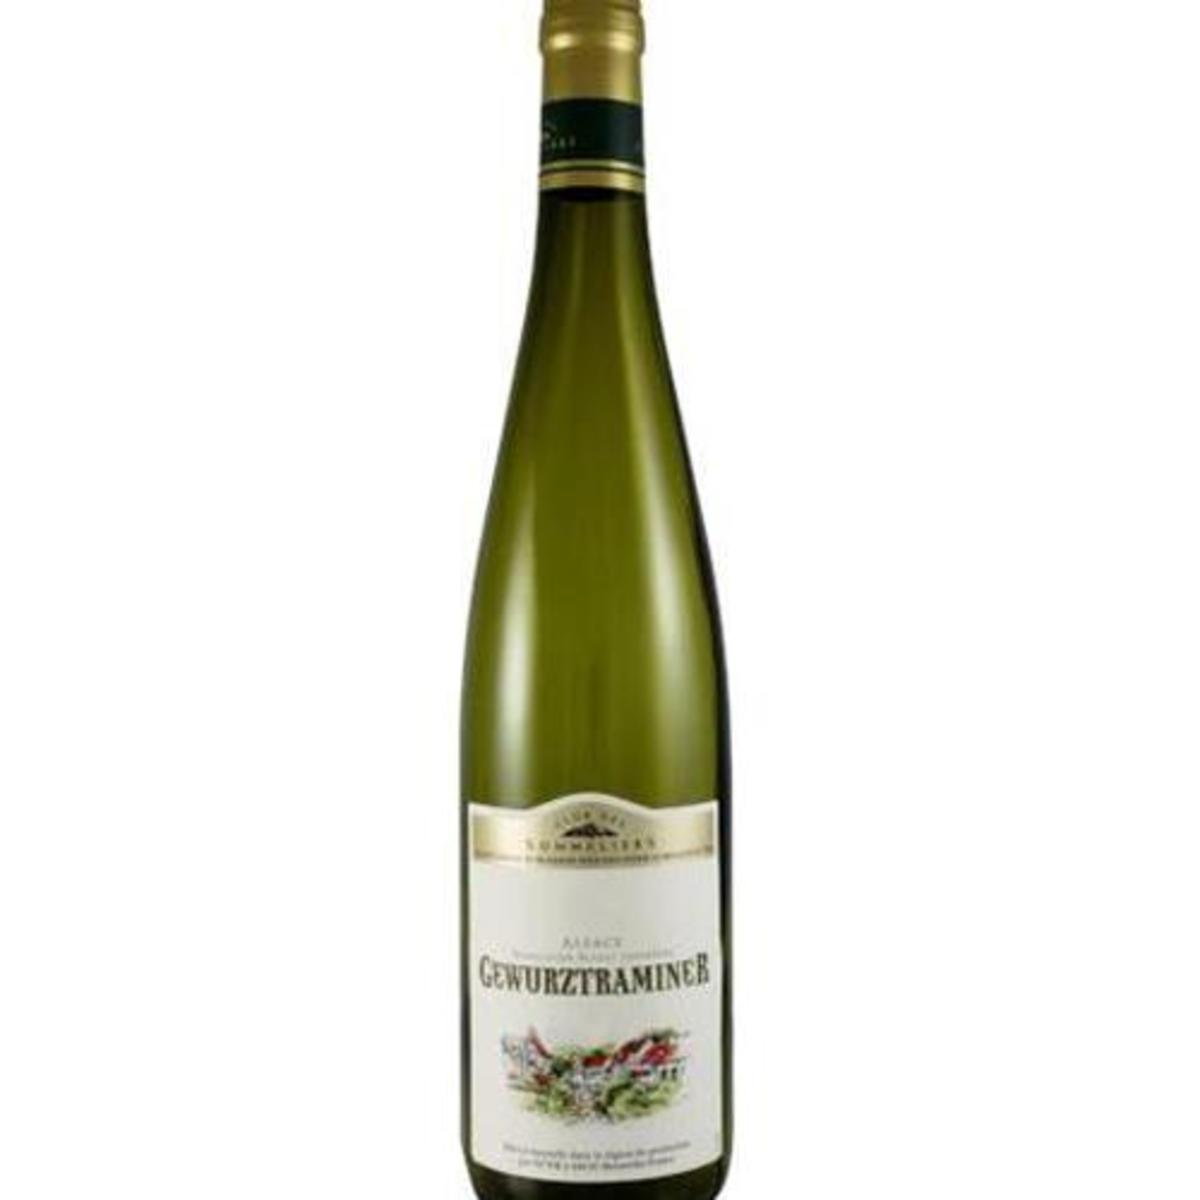 Direct from France - Alsace Gewurztraminer Wine Club Des Sommeliers (750ml)